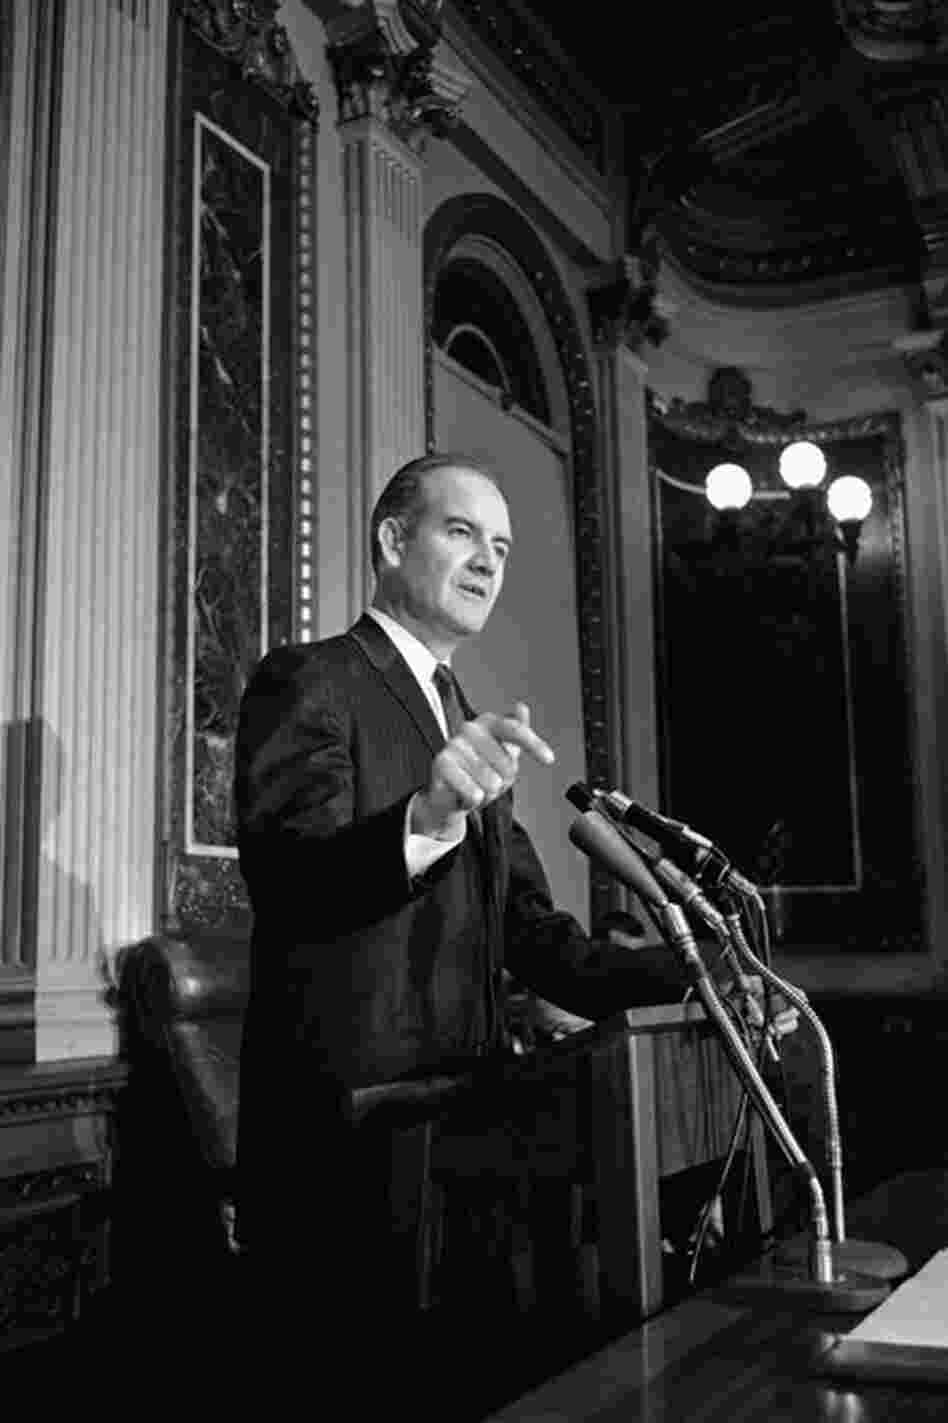 In the Senate, McGovern took on the issue of hunger in America. Here he discusses his recommendations for more vigorous efforts to use surplus food at a news conference in Washington in 1961.